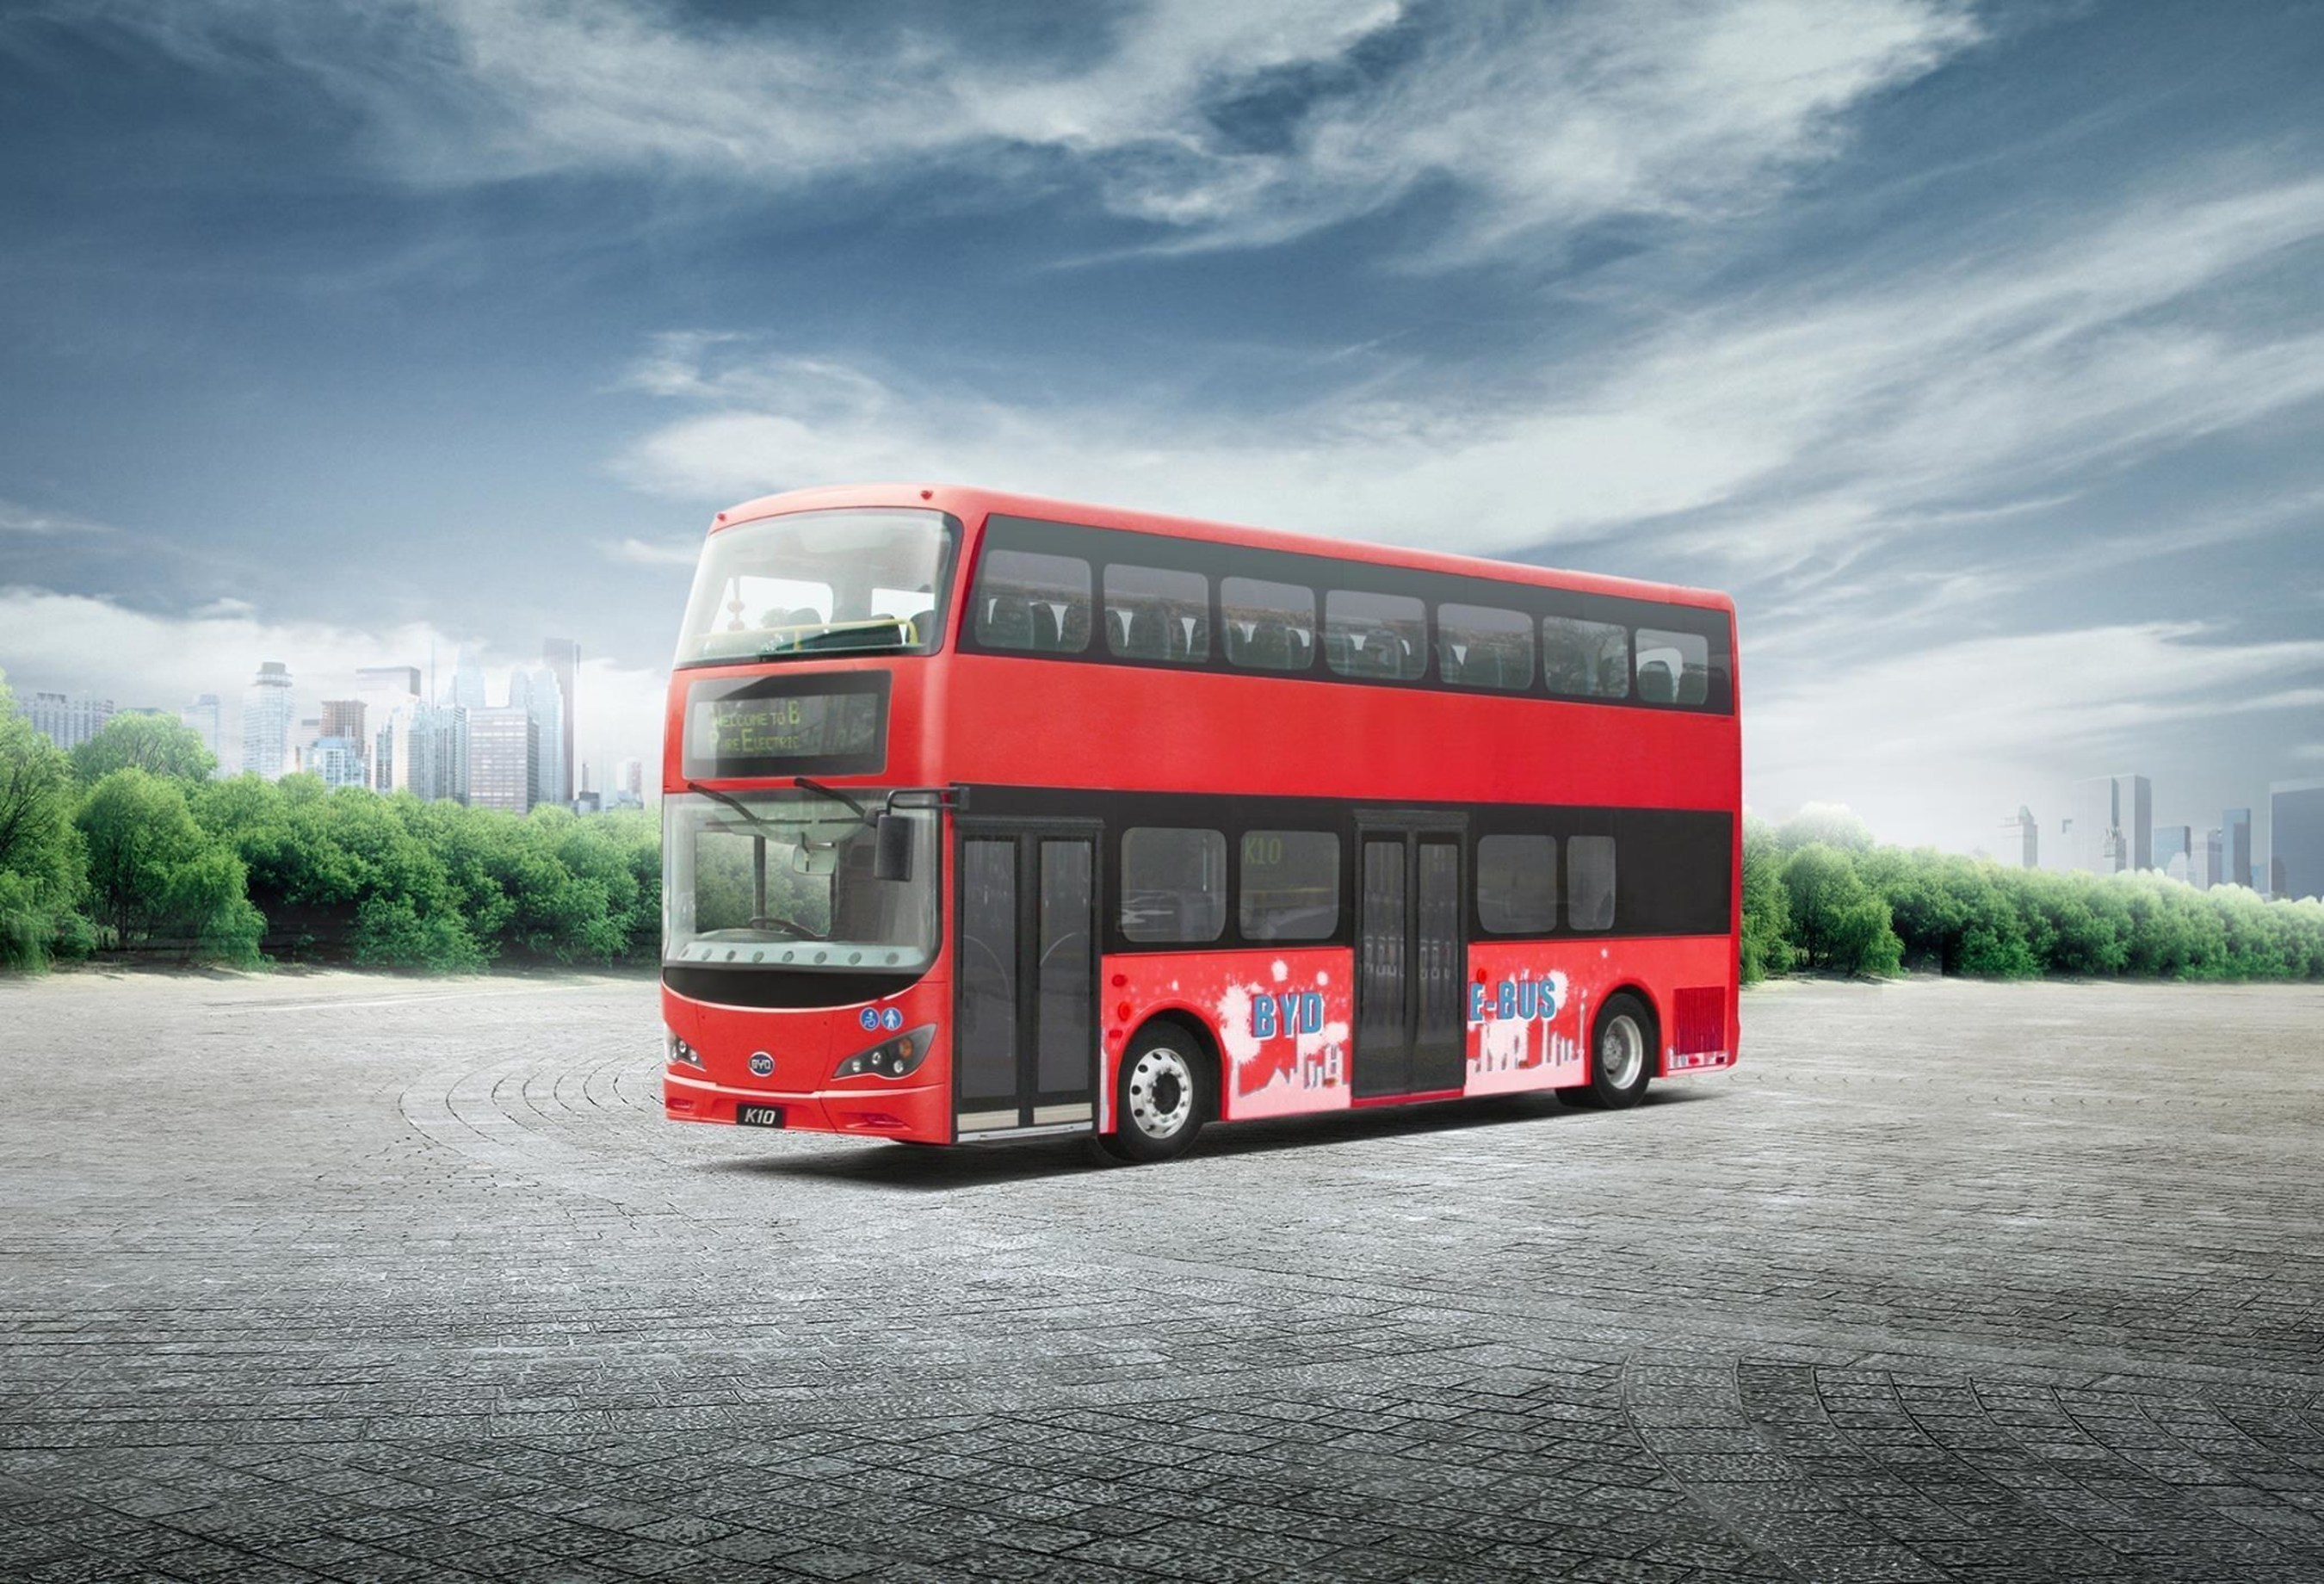 London England's Iconic Double-Decker Buses to go Electric